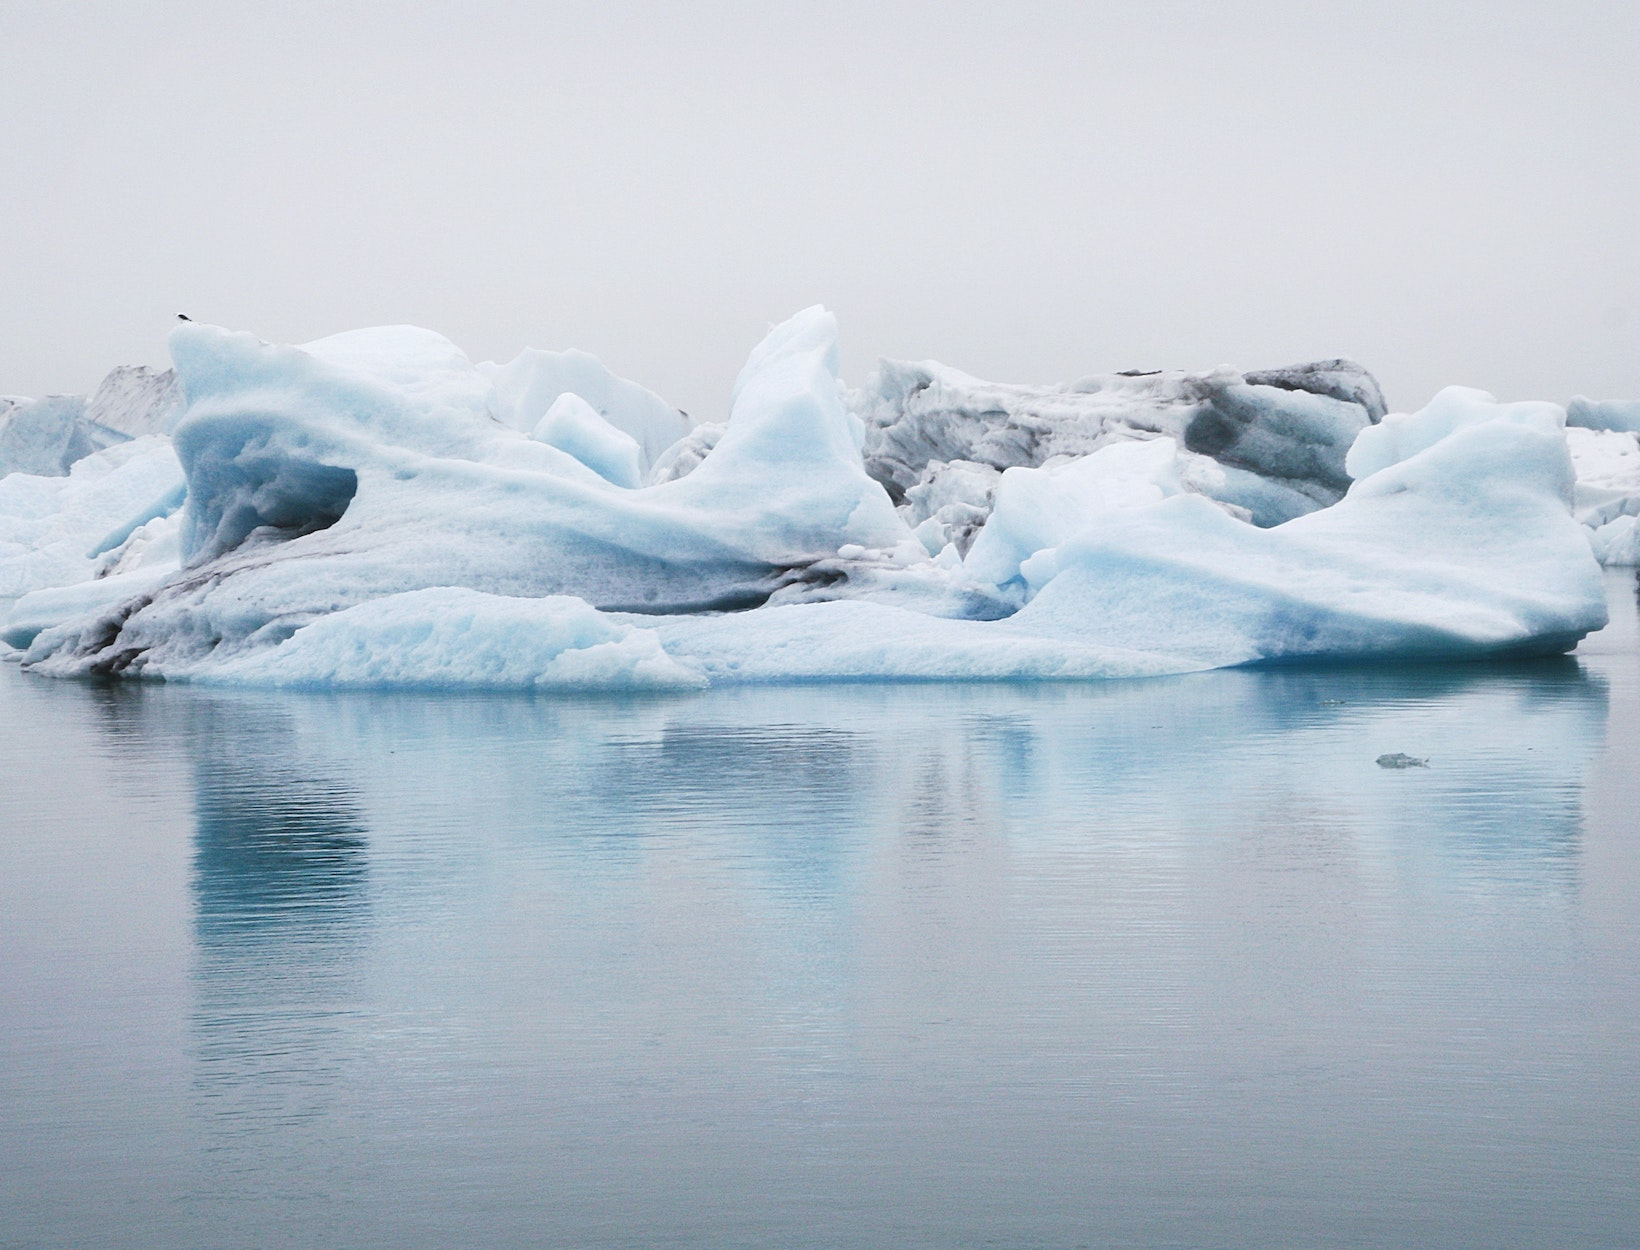 The World Has Just over a Decade to Get Climate Change under Control, U.N. Scientists Say